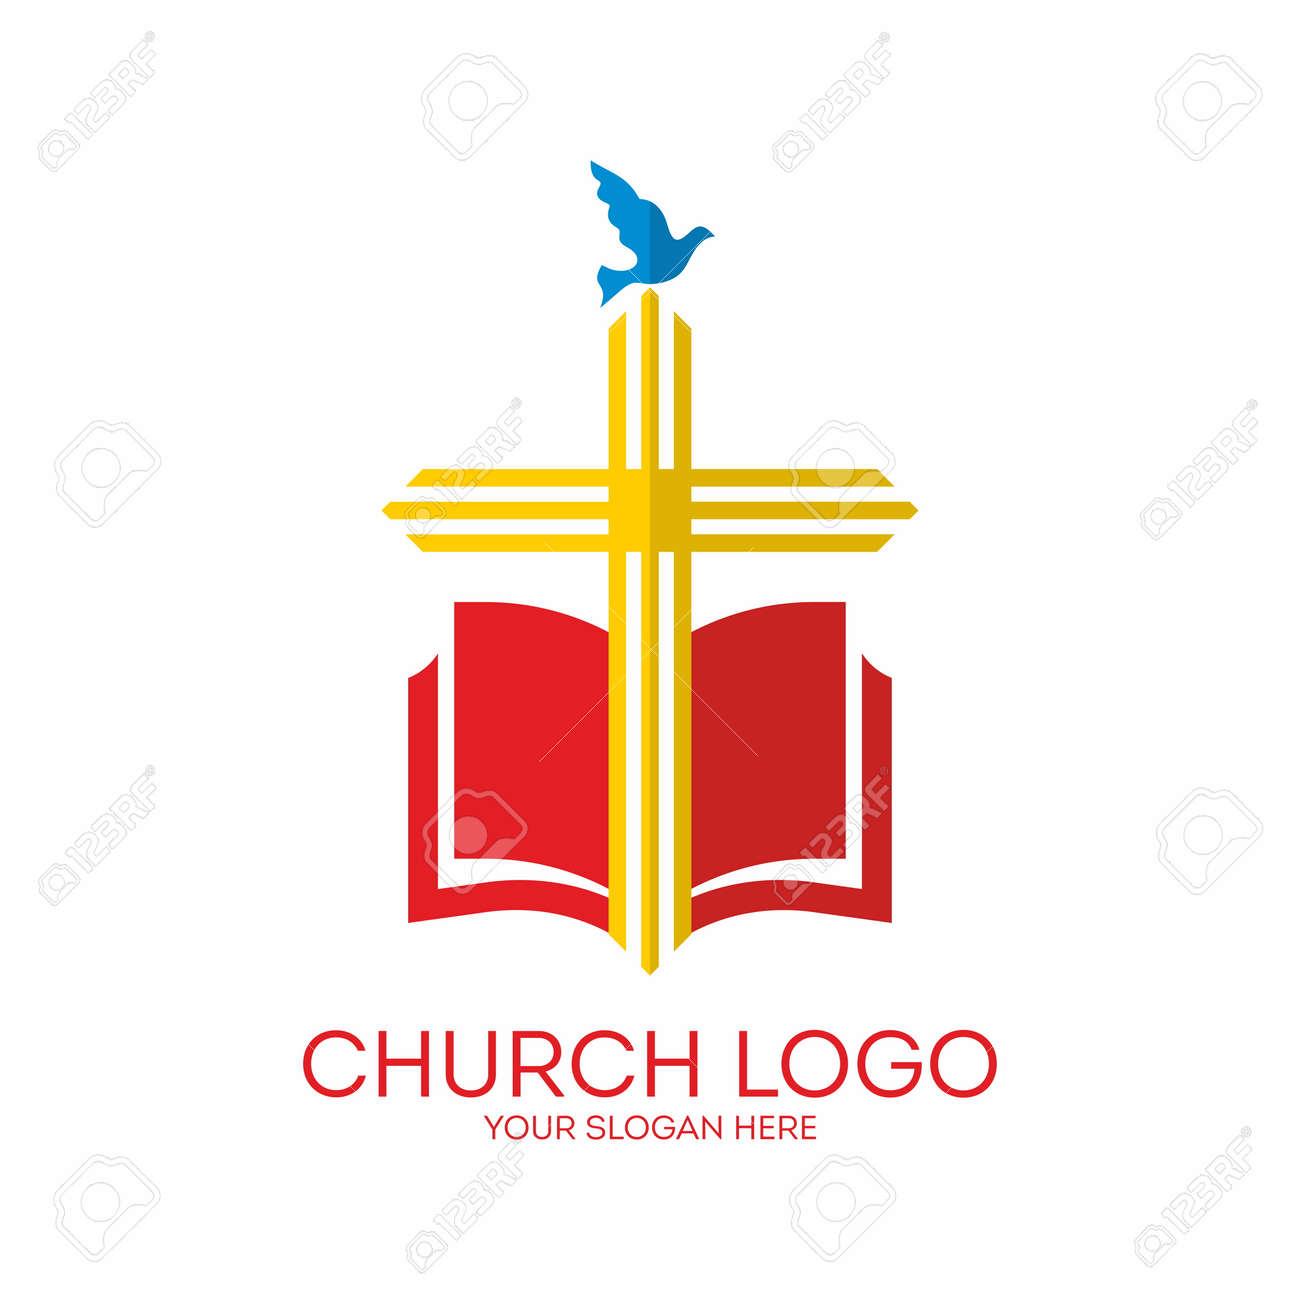 Church logo cross bible dove icon red yellow blue royalty church logo cross bible dove icon red yellow blue altavistaventures Choice Image